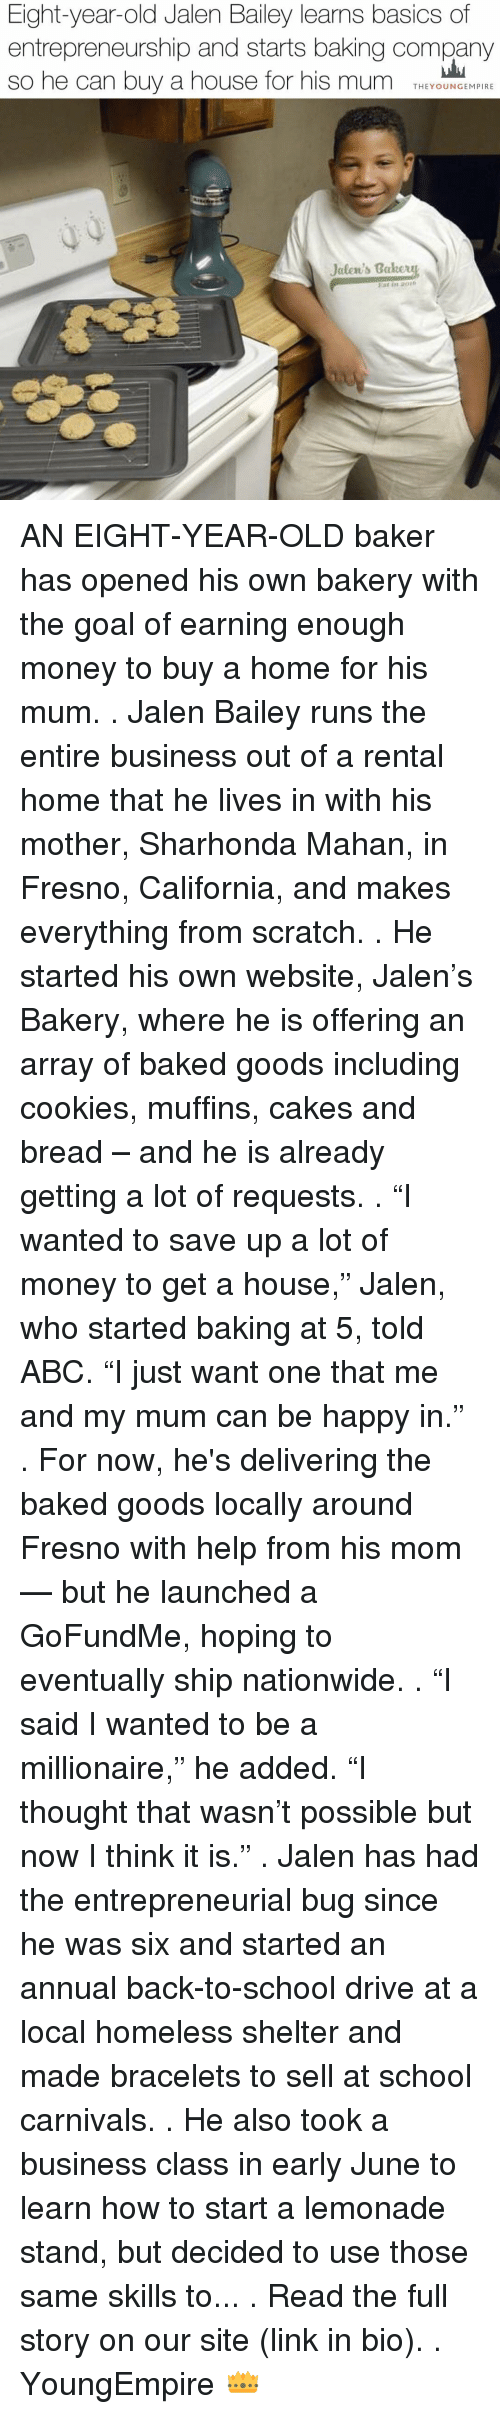 "Abc, Memes, and Scratch: Eight-year-old Jalen Bailey learns basics of  entrepreneurship and starts baking company  so he can buy a house for his mum  THE YOUNG EMPIRE  Jalen's takeut AN EIGHT-YEAR-OLD baker has opened his own bakery with the goal of earning enough money to buy a home for his mum. . Jalen Bailey runs the entire business out of a rental home that he lives in with his mother, Sharhonda Mahan, in Fresno, California, and makes everything from scratch. . He started his own website, Jalen's Bakery, where he is offering an array of baked goods including cookies, muffins, cakes and bread – and he is already getting a lot of requests. . ""I wanted to save up a lot of money to get a house,"" Jalen, who started baking at 5, told ABC. ""I just want one that me and my mum can be happy in."" . For now, he's delivering the baked goods locally around Fresno with help from his mom — but he launched a GoFundMe, hoping to eventually ship nationwide. . ""I said I wanted to be a millionaire,"" he added. ""I thought that wasn't possible but now I think it is."" . Jalen has had the entrepreneurial bug since he was six and started an annual back-to-school drive at a local homeless shelter and made bracelets to sell at school carnivals. . He also took a business class in early June to learn how to start a lemonade stand, but decided to use those same skills to... . Read the full story on our site (link in bio). . YoungEmpire 👑"